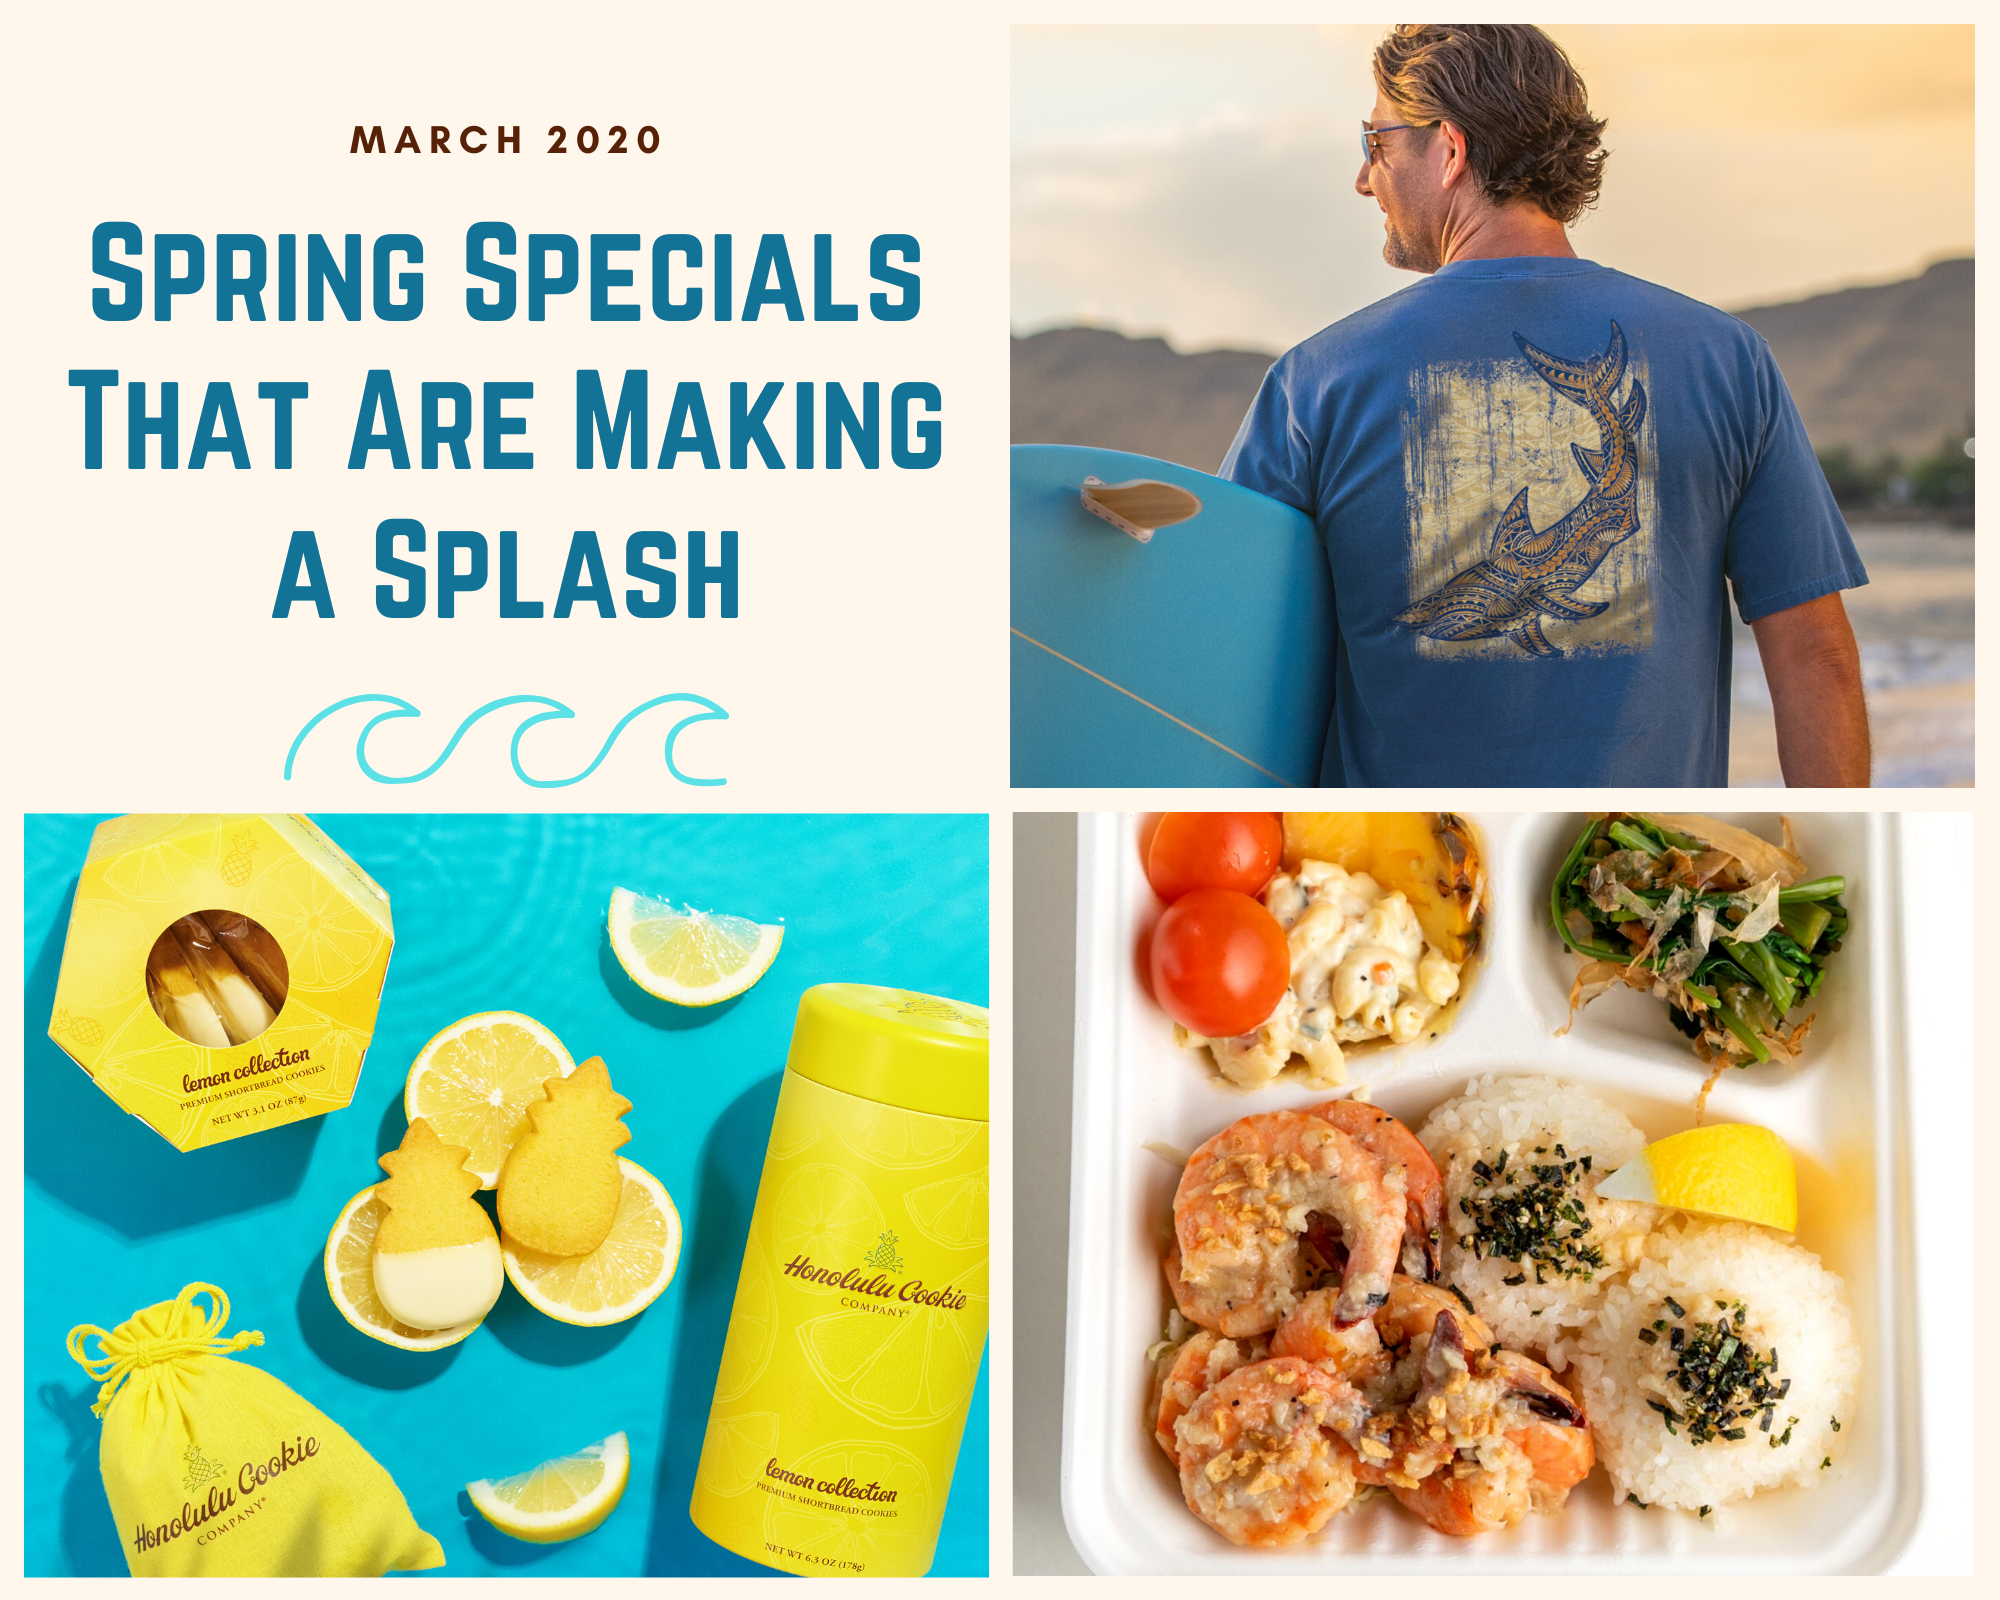 March 2020: Spring Specials That Are Making a Splash